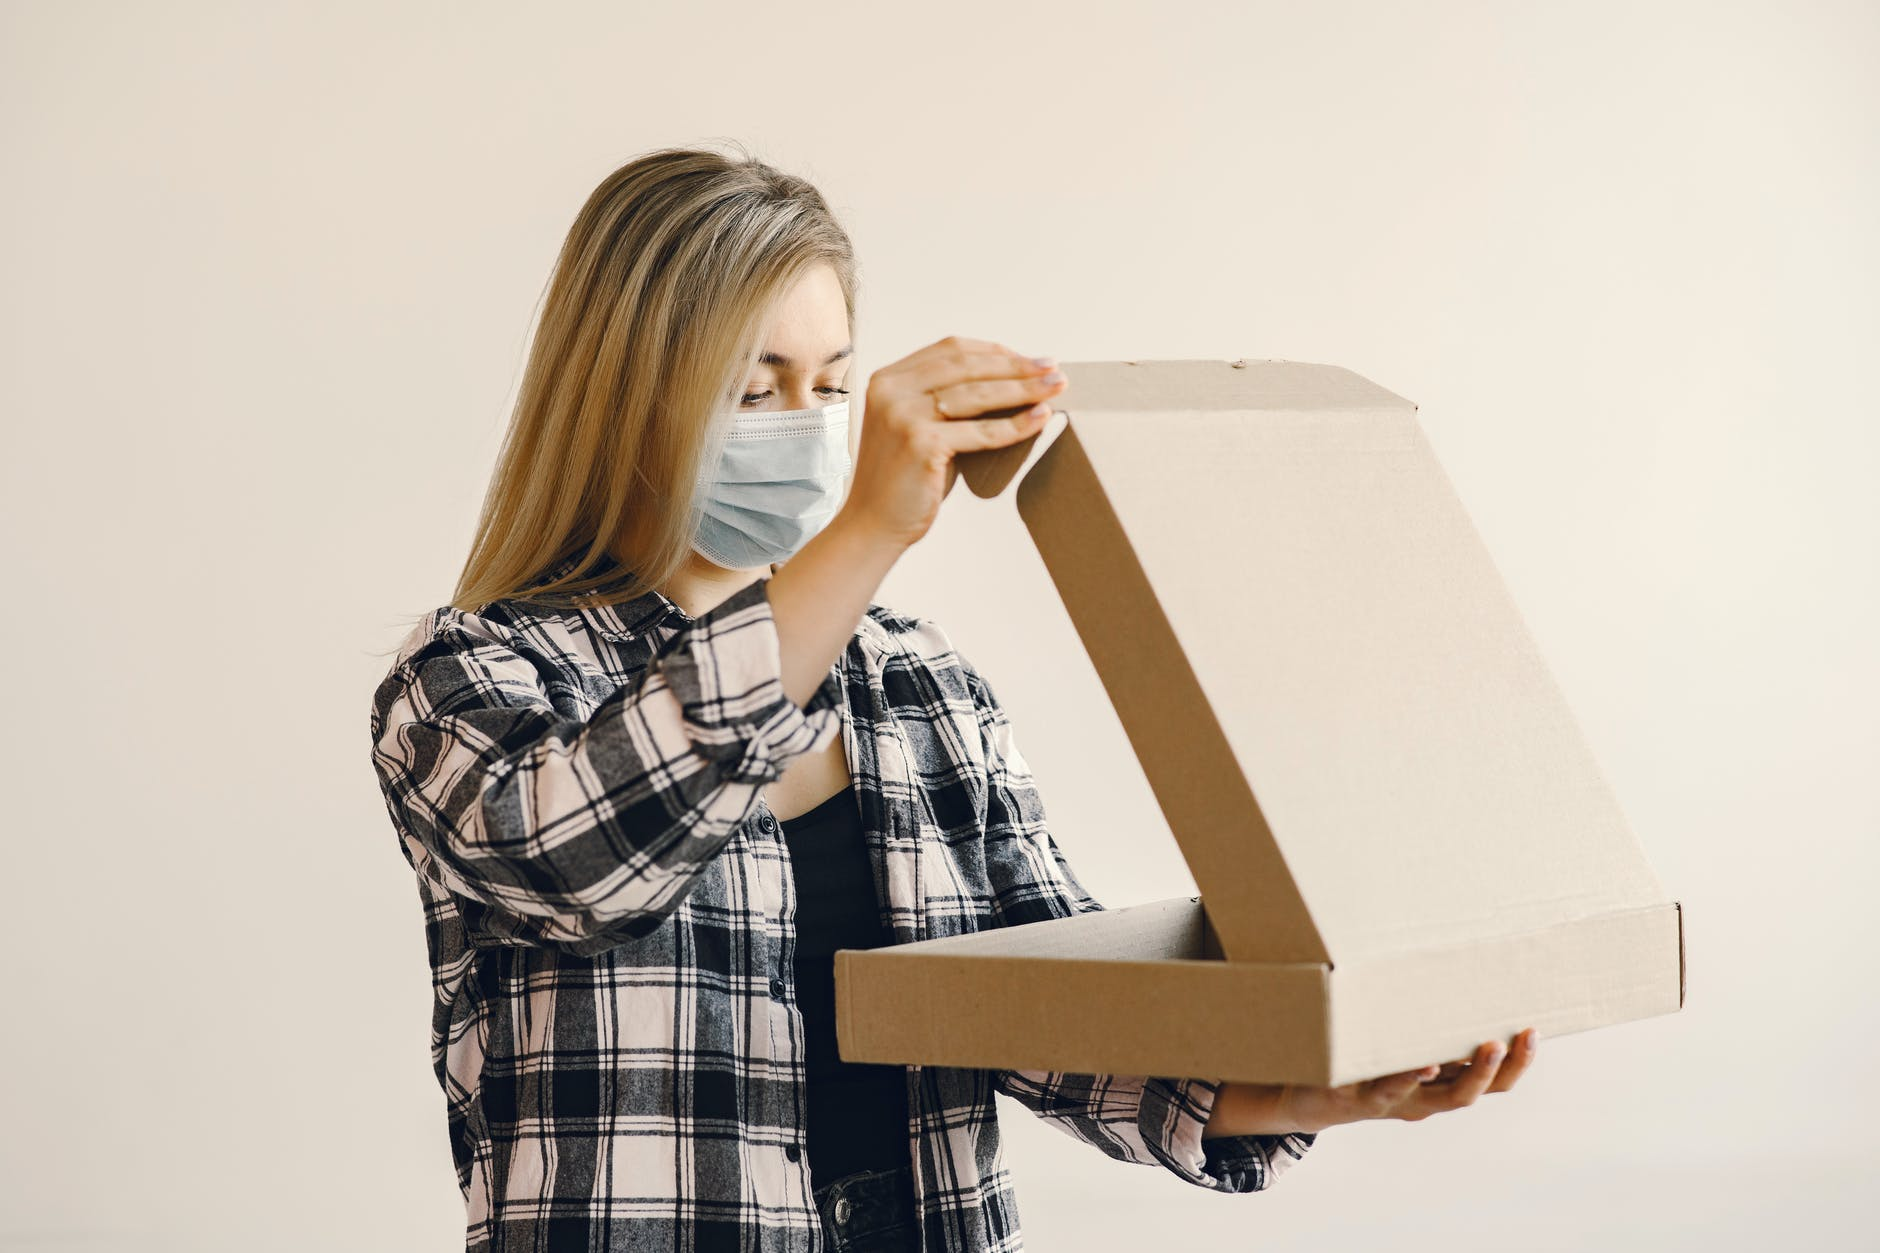 Woman with long blonde hair wearing a mask and holding an open cardboard box.